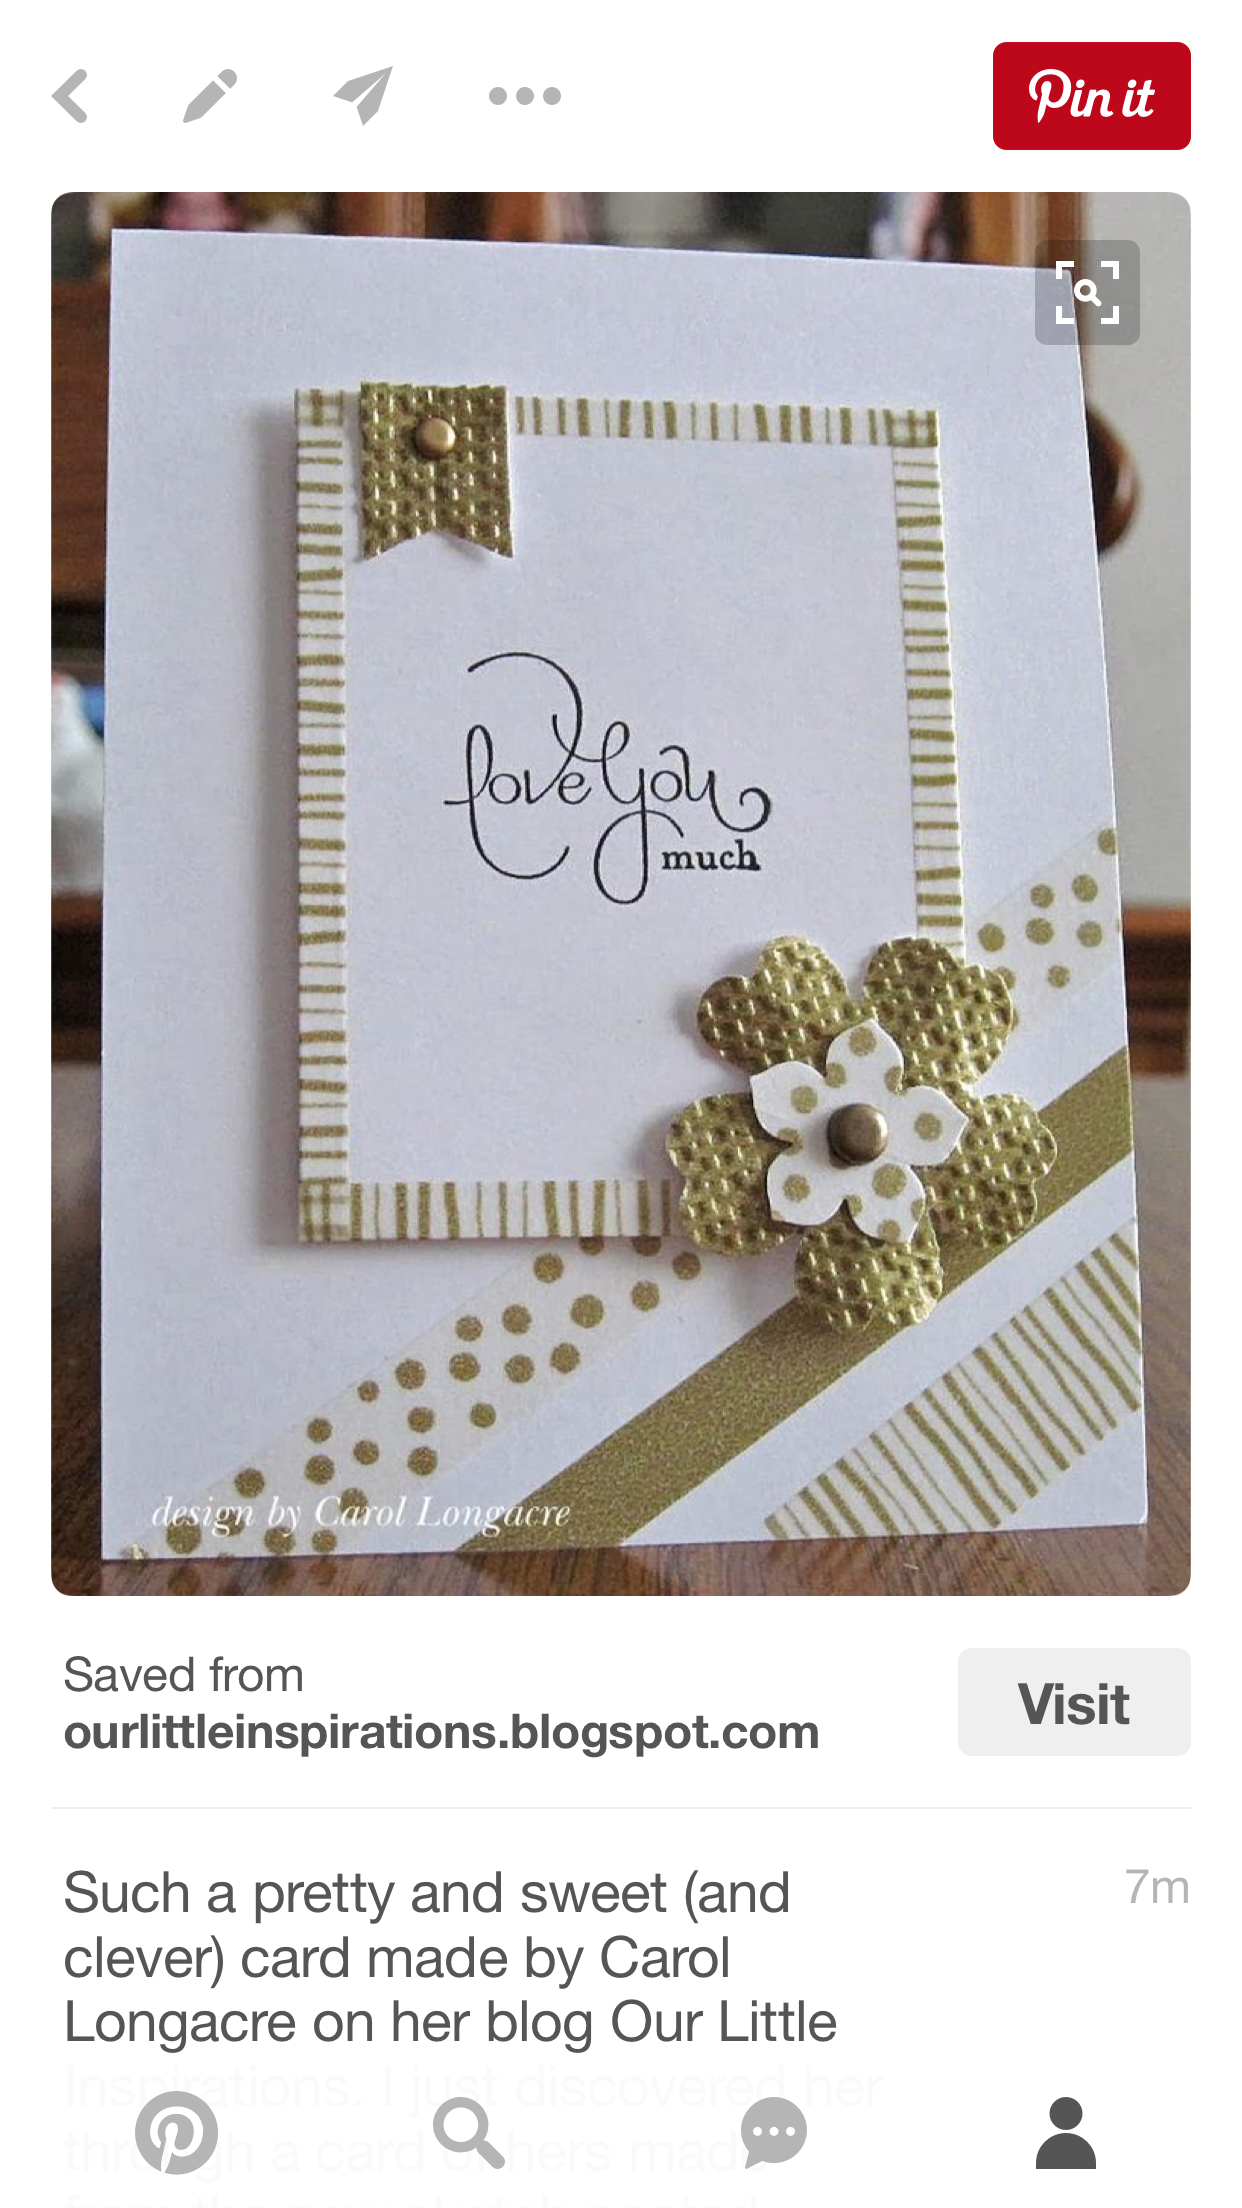 Pin by Patricia Bell on Scrap booking | Pinterest | Cards, Card ...